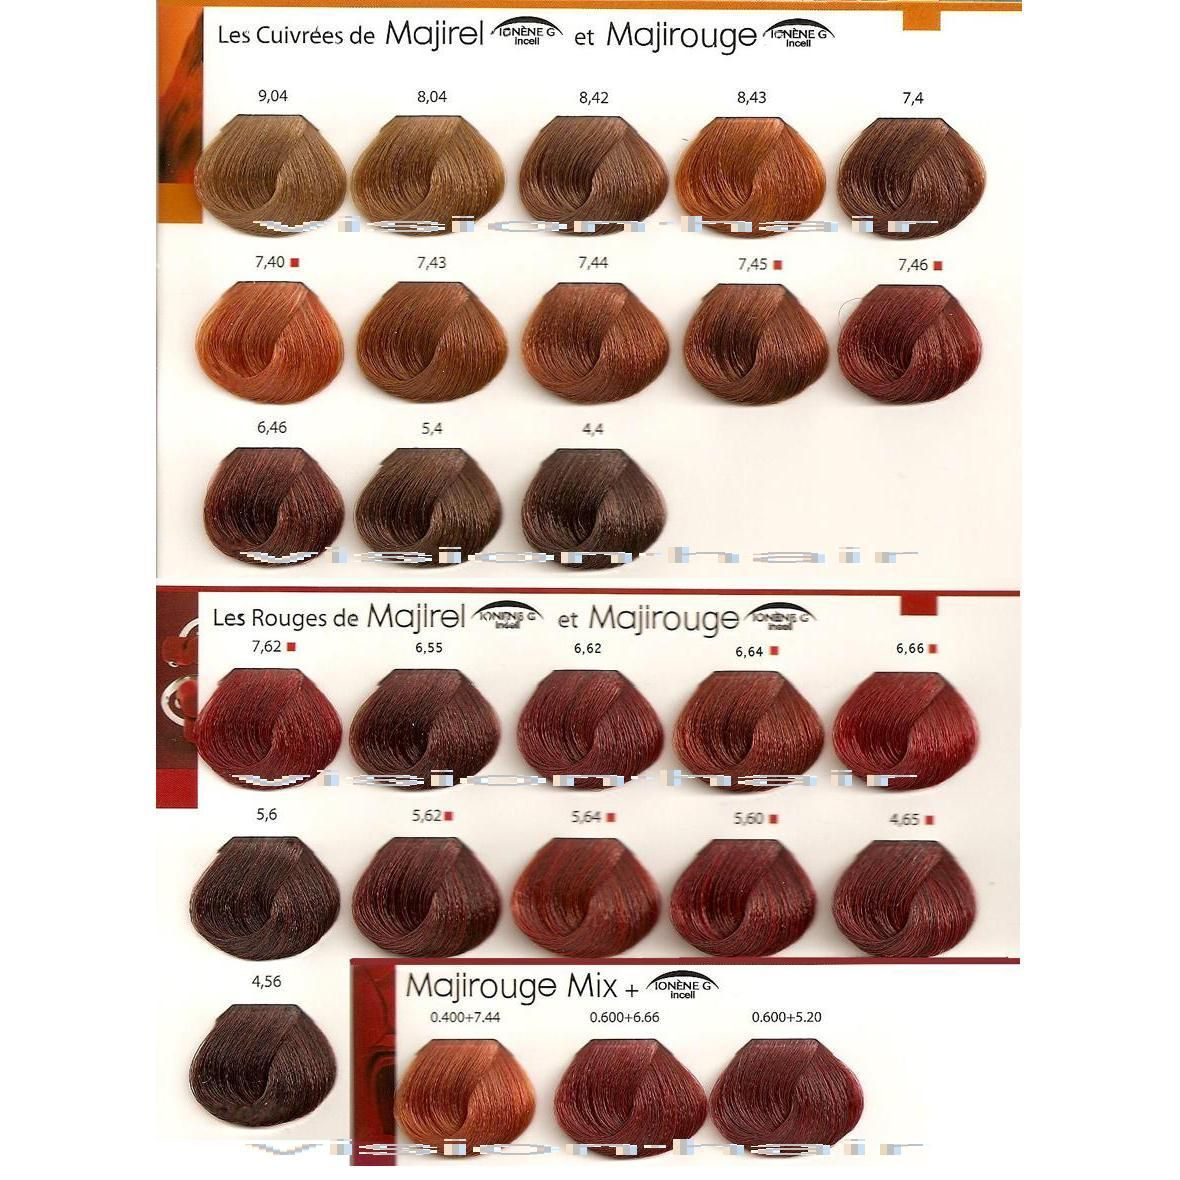 How to dye hair red ginger copper red hair colour copper red how to dye hair red ginger from any base color at home using loreal majirel majirouge hair dye from sallys nvjuhfo Image collections